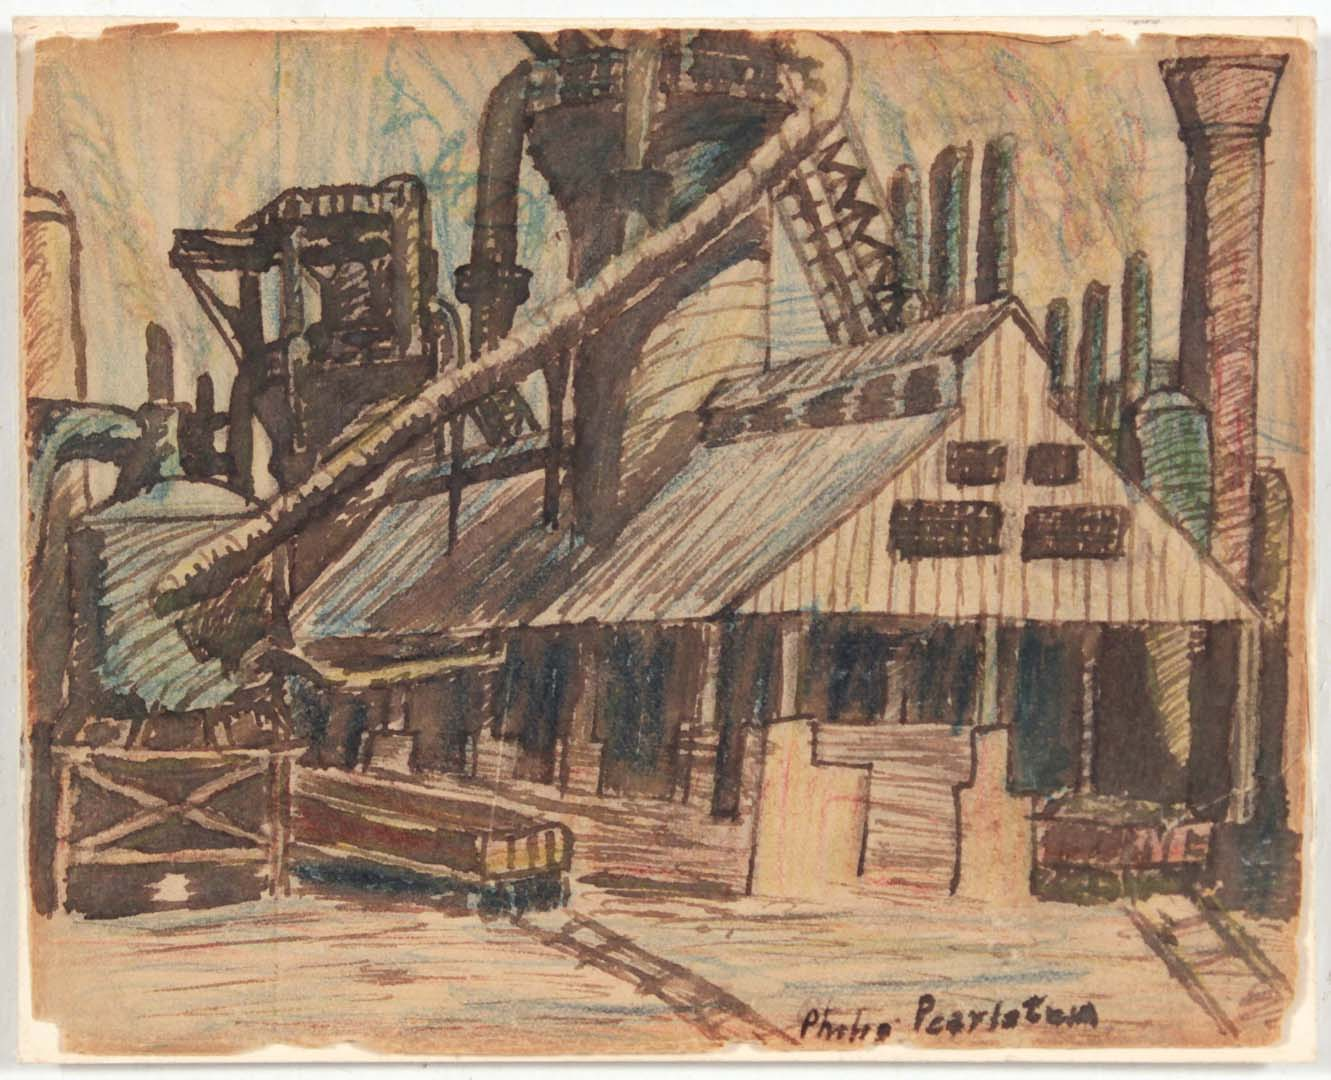 "1949 Image 38 (Pittsburg Factory) Wash and Crayon on Paper 4"" x 5"""